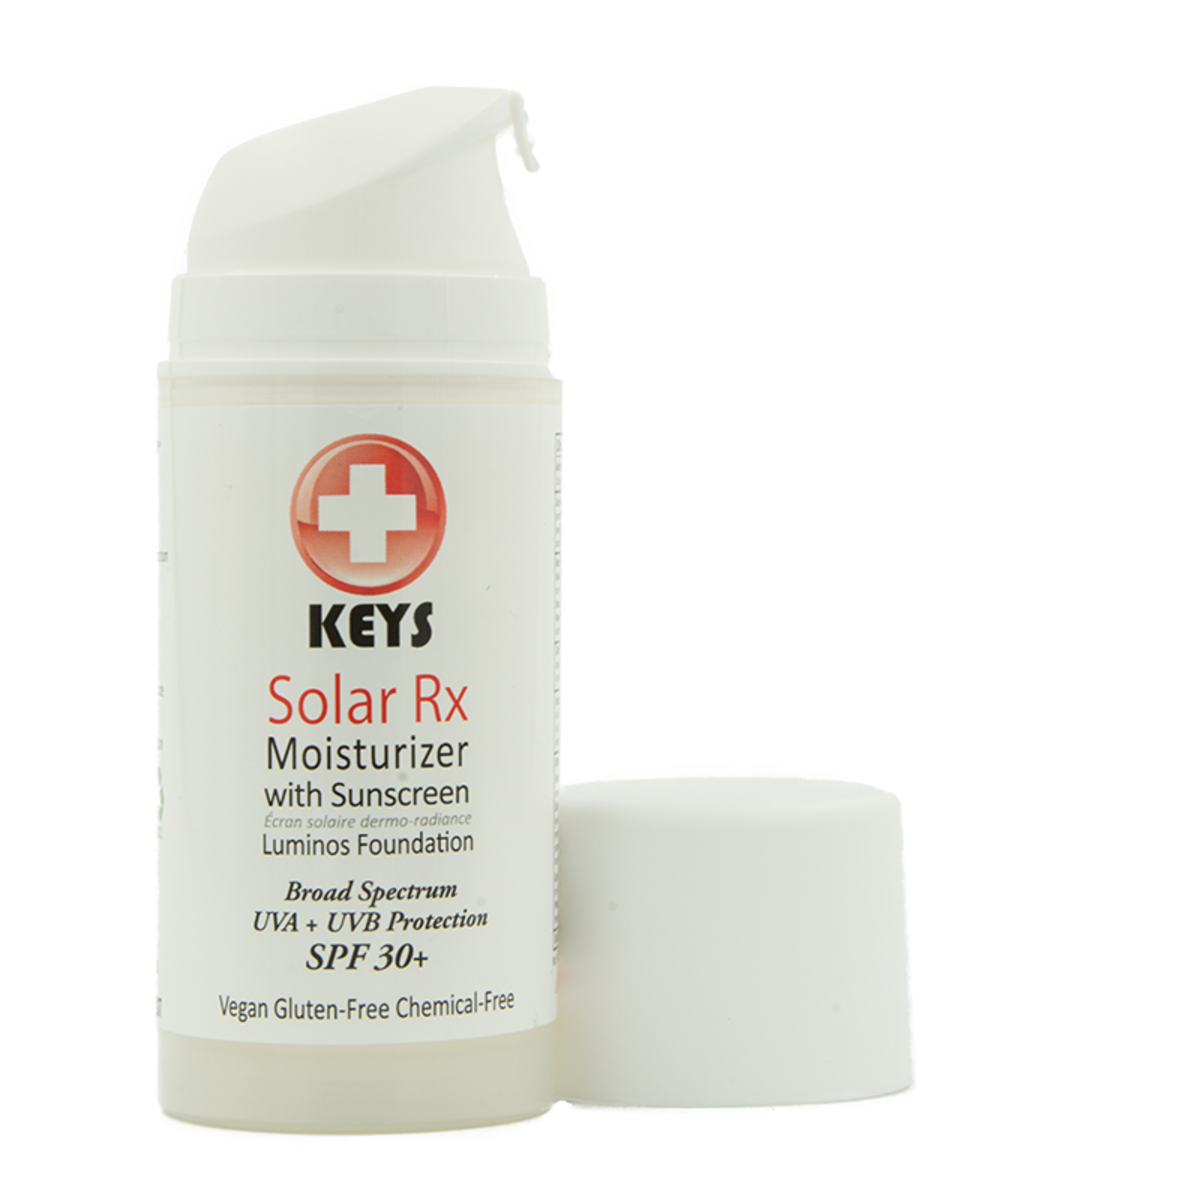 KEYS Solar Rx Hydrating Moisturizer SPF 30+ Sunscreen